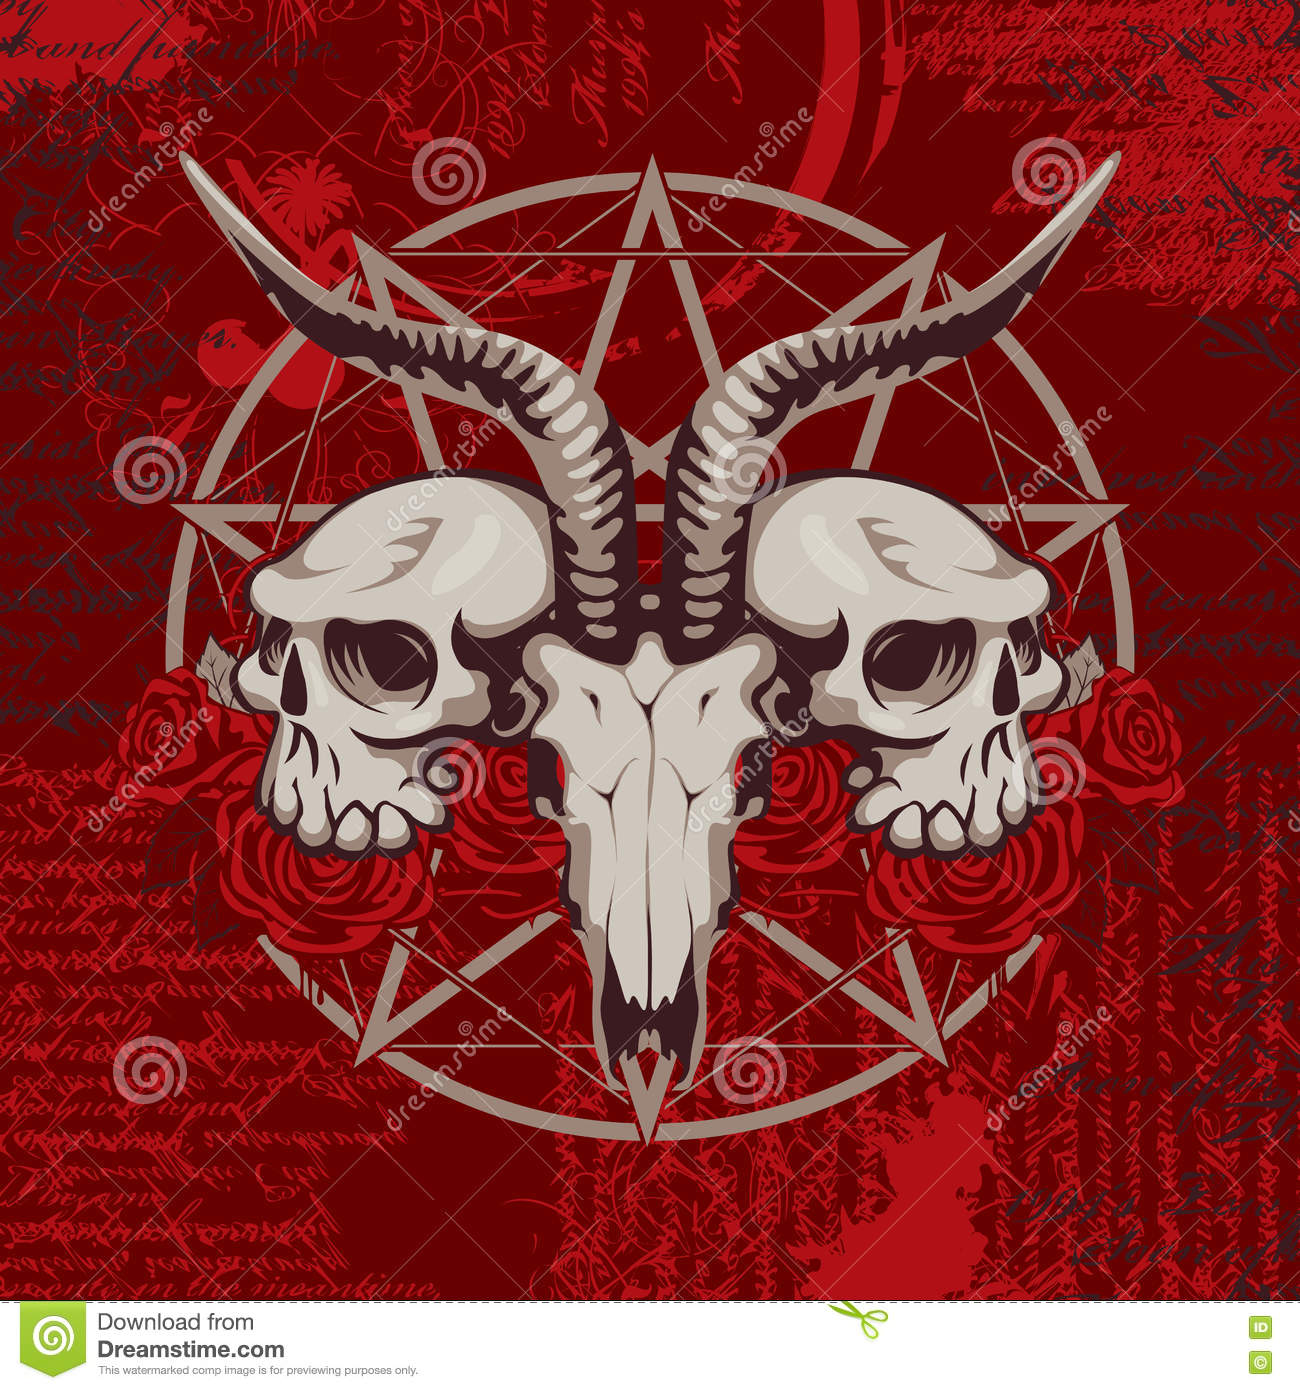 Goat Skull On The Background With Occult Symbols Stock Illustration